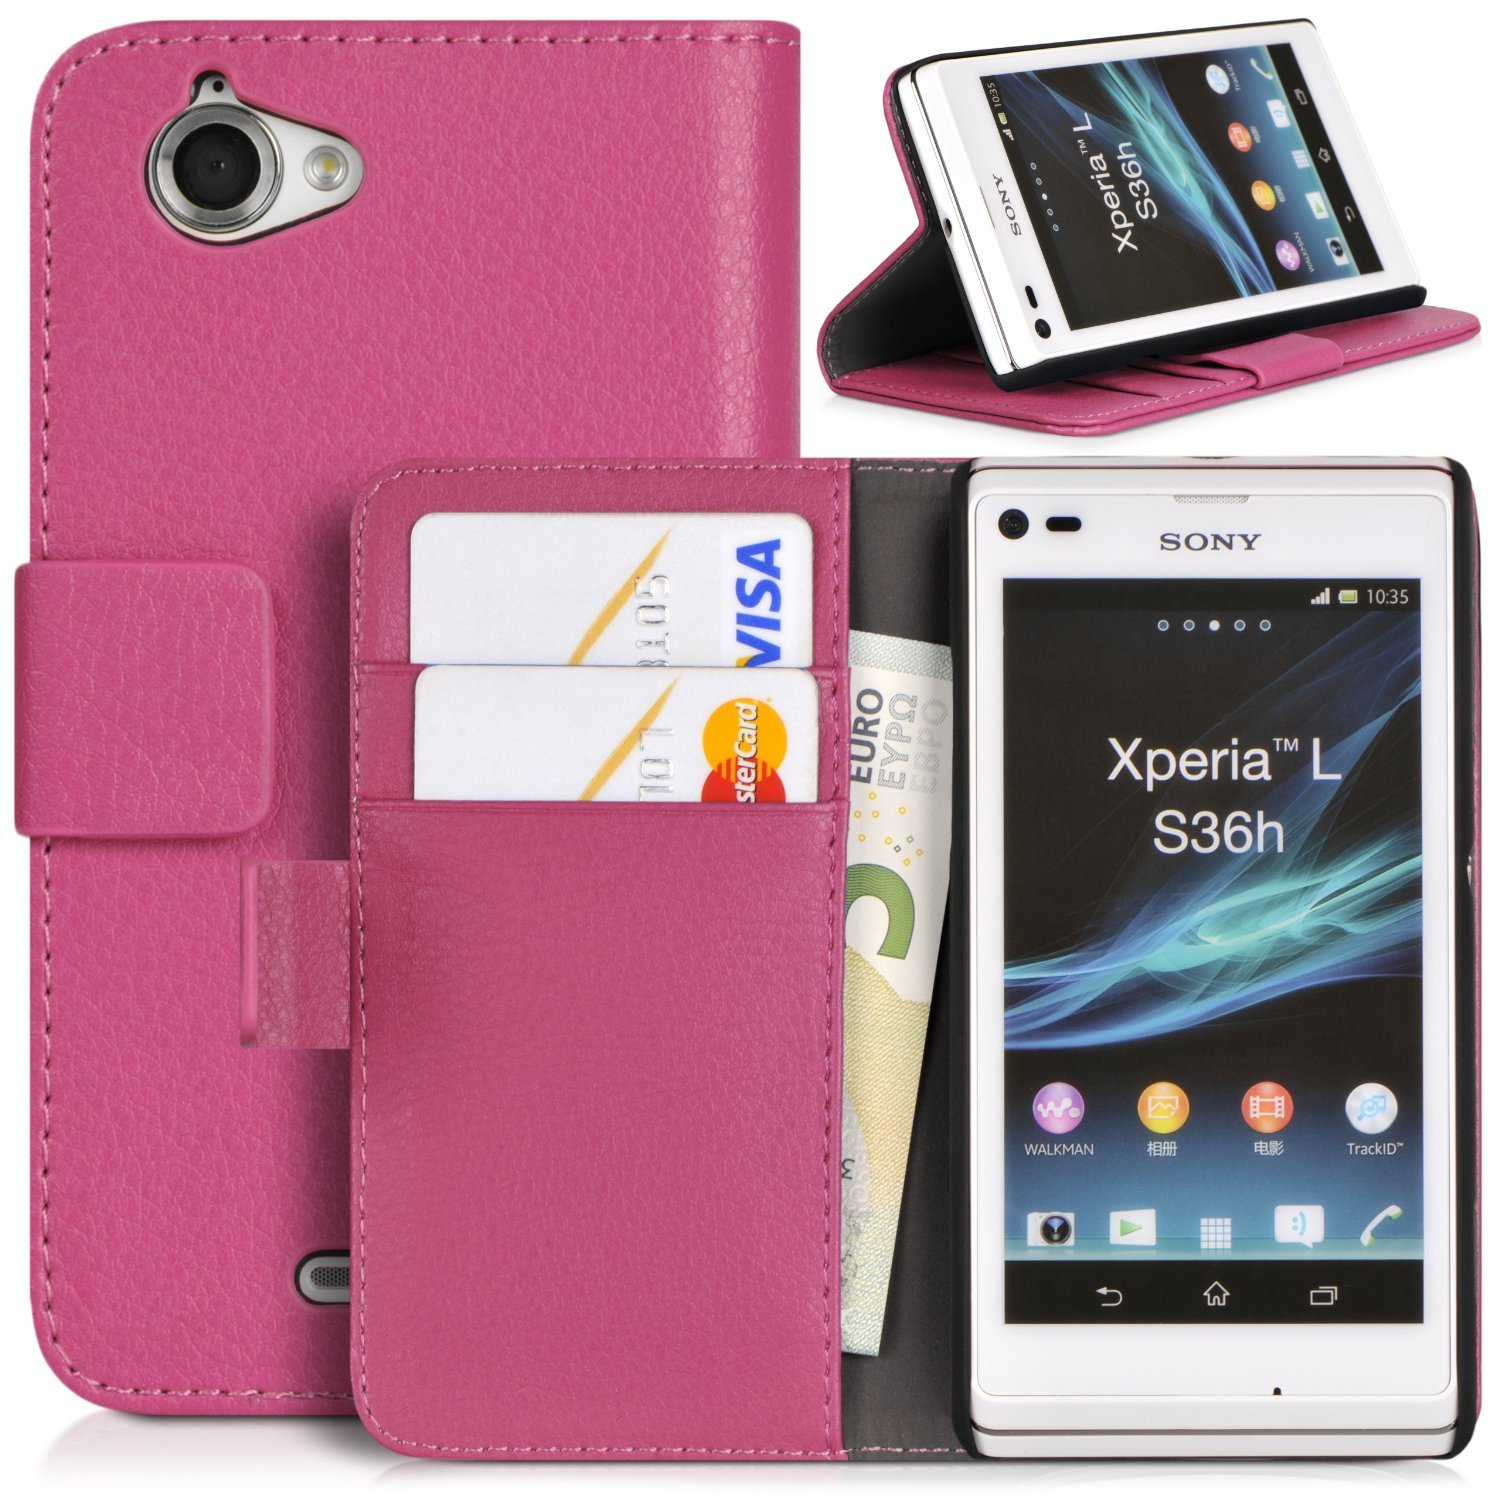 newest 0f935 c361d Topratesell Structure Wallet Flip Case Bag Pouch for Sony Xperia L C2104  C2105 with Credit Card Pockets and Stand-up Feature (Hot Pink)